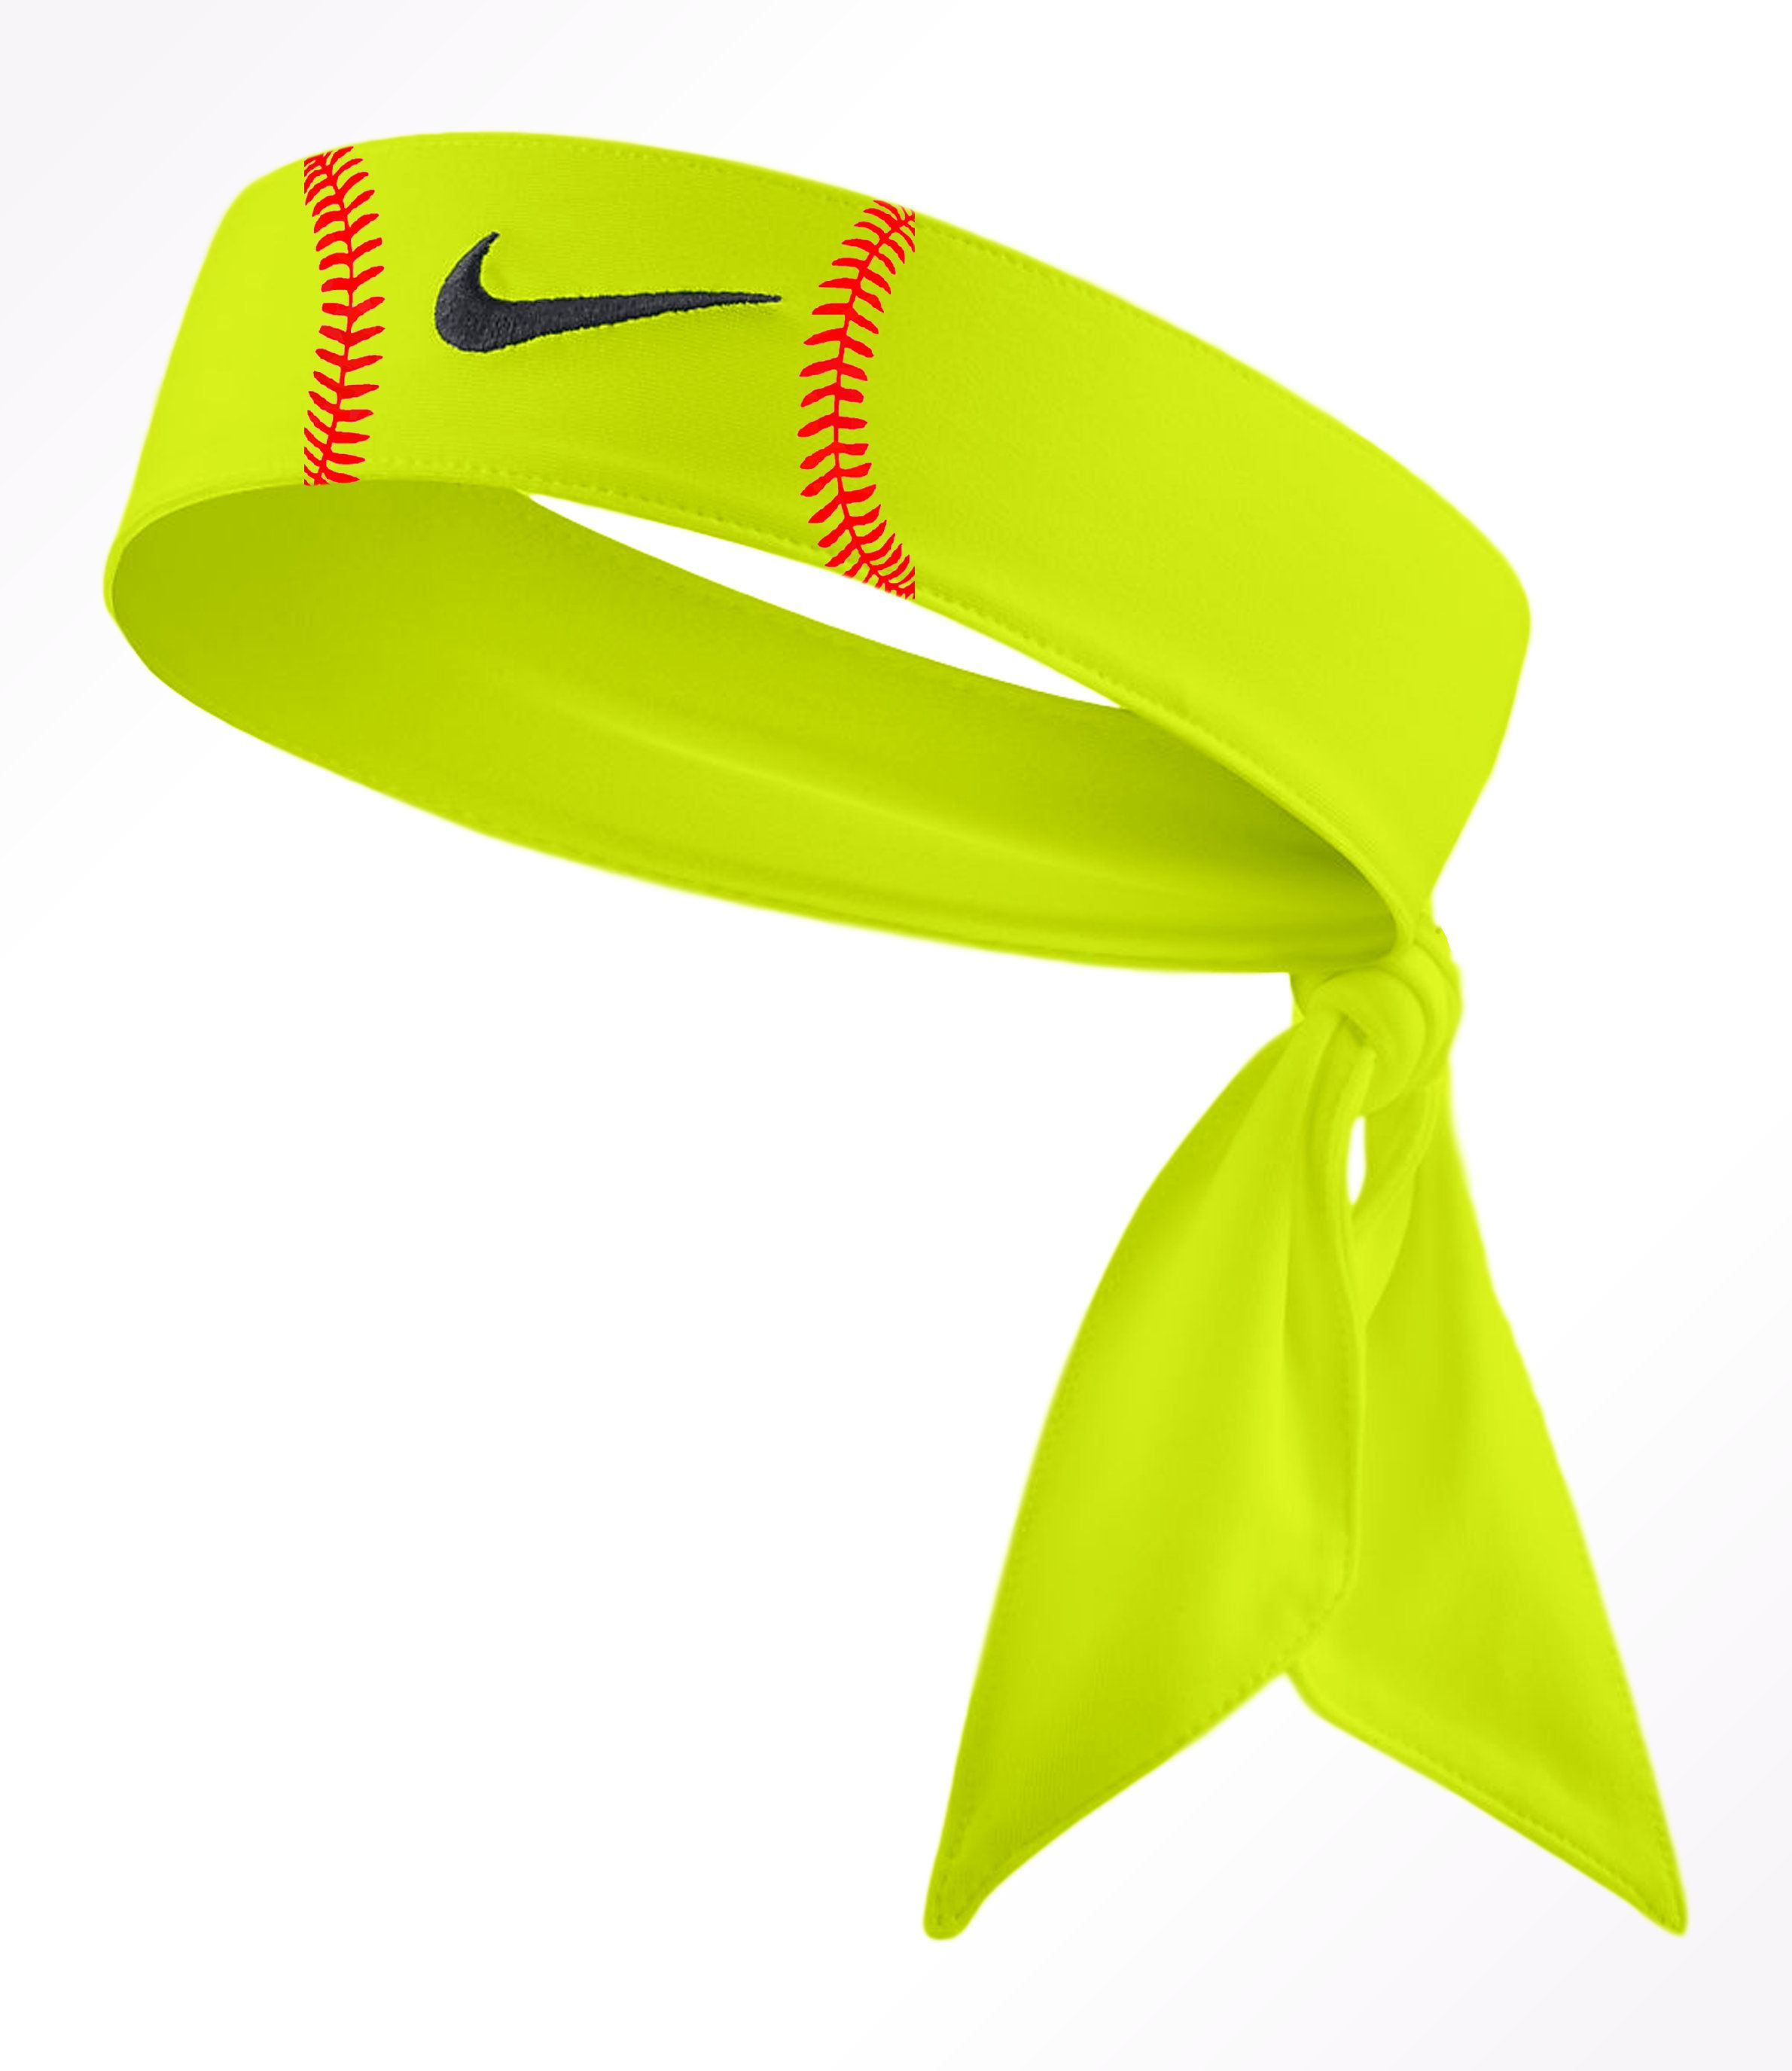 Custom Softball Nike Dri Fit Head Tie Headband 2 0 White Black Red Volt Highlighter Lime Green Sports Tie Headband Nike Tie Headbands Head Ties